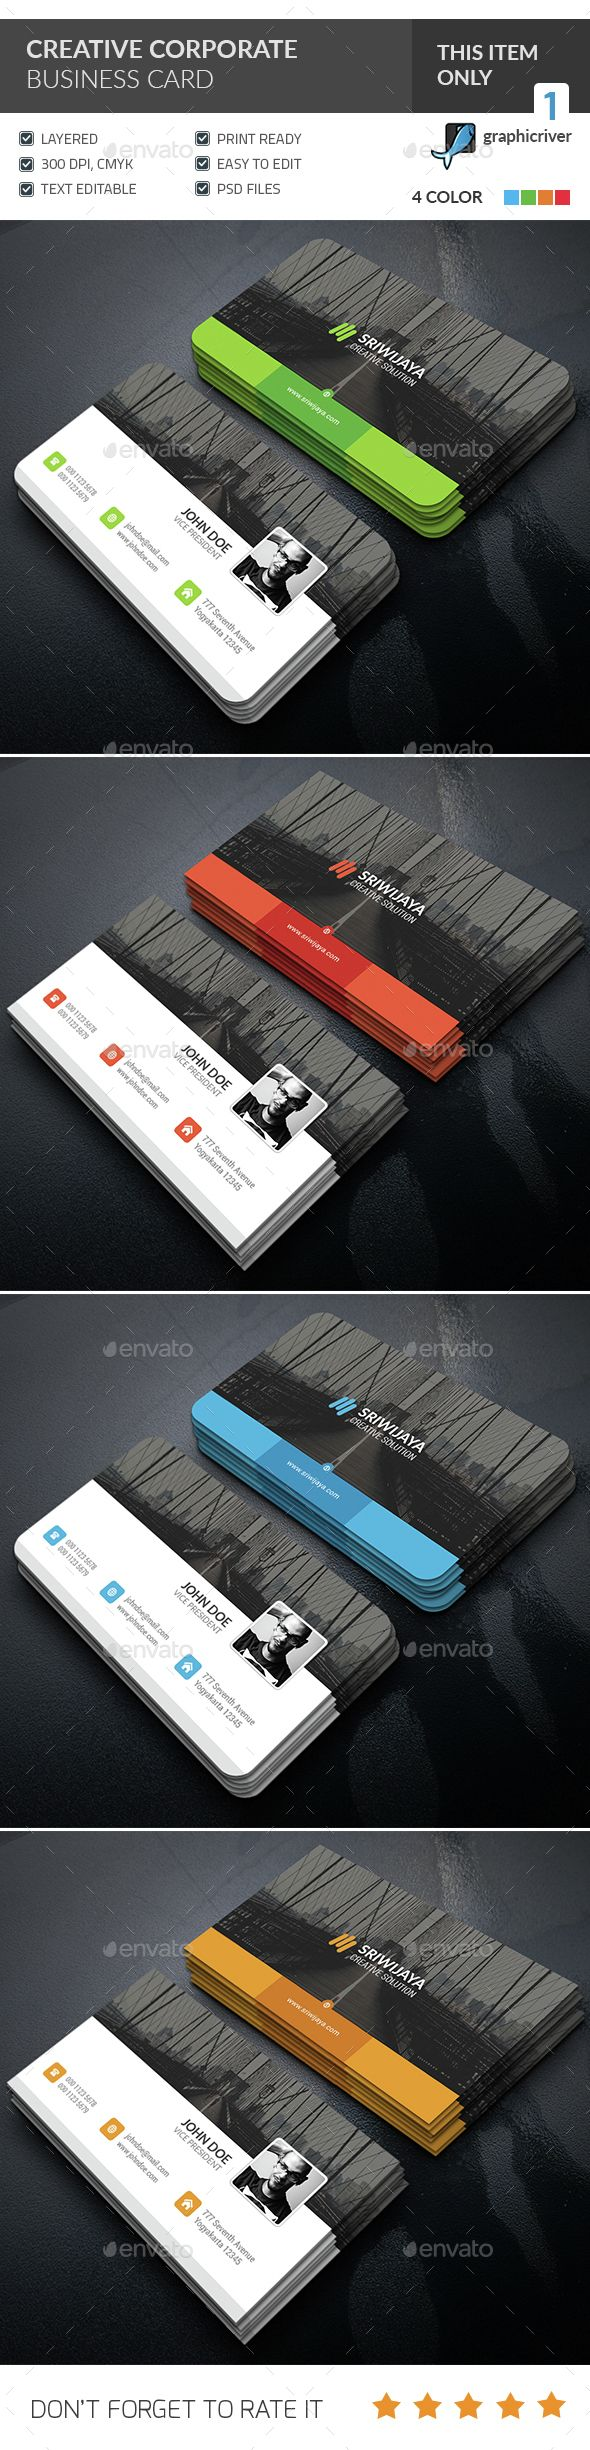 160 best Business Cards images on Pinterest | Business card design ...